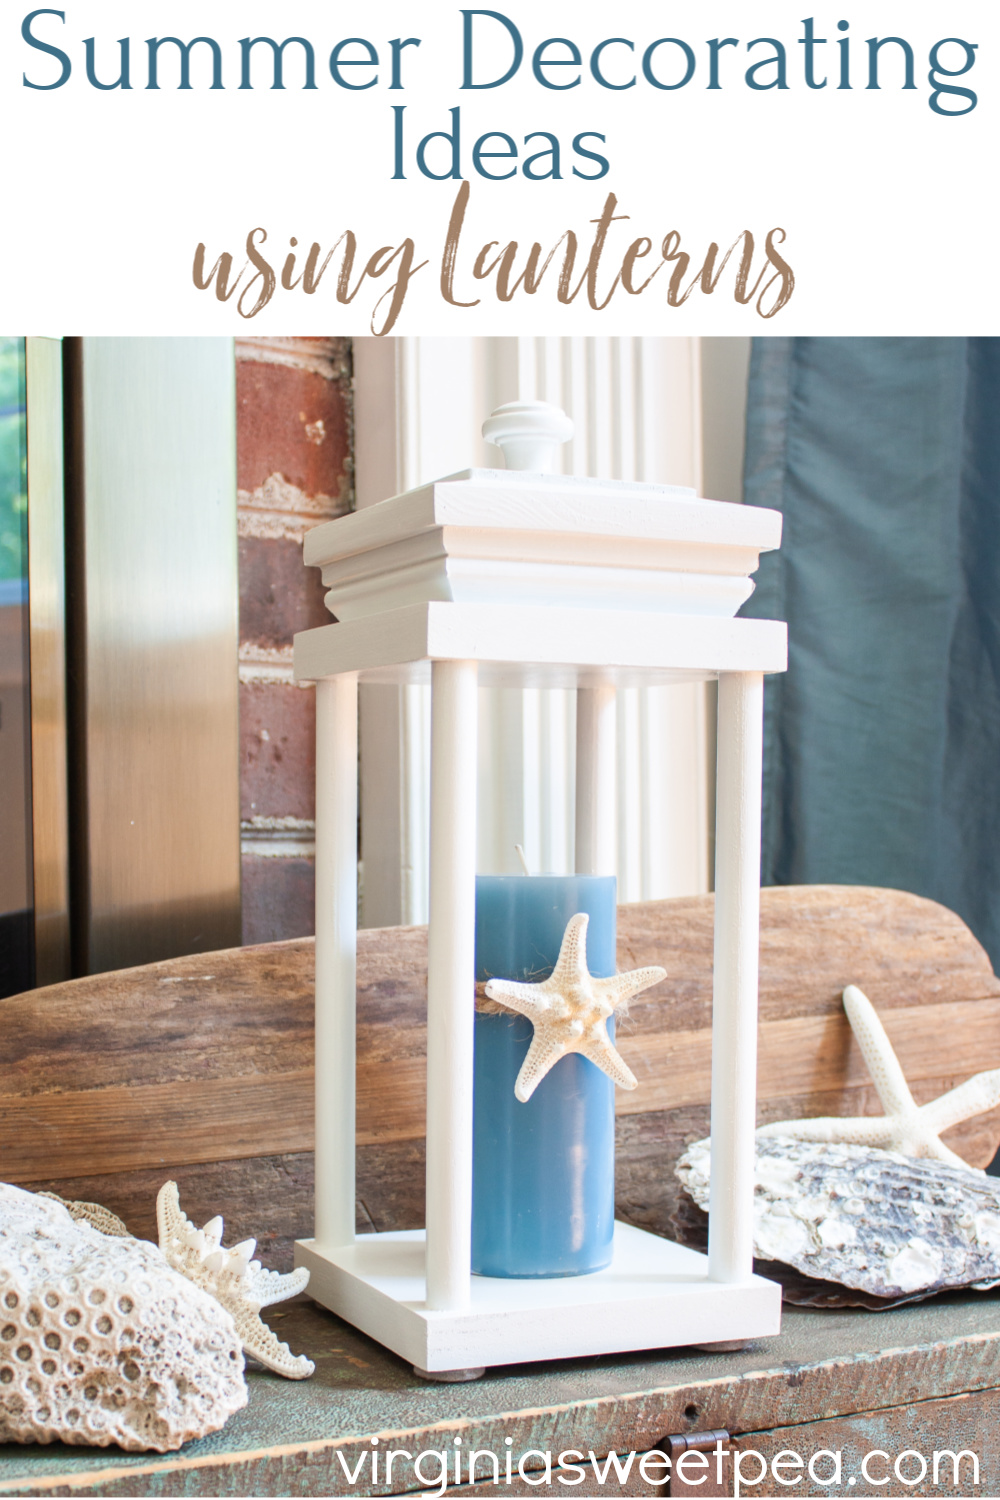 Summer Decorating Ideas Using Lanterns - Get a variety of ideas for using lanterns when decorating for summer. #summerdecorating #summerdecor #coastaldecor #lantern #decoratewithlantersn via @spaula